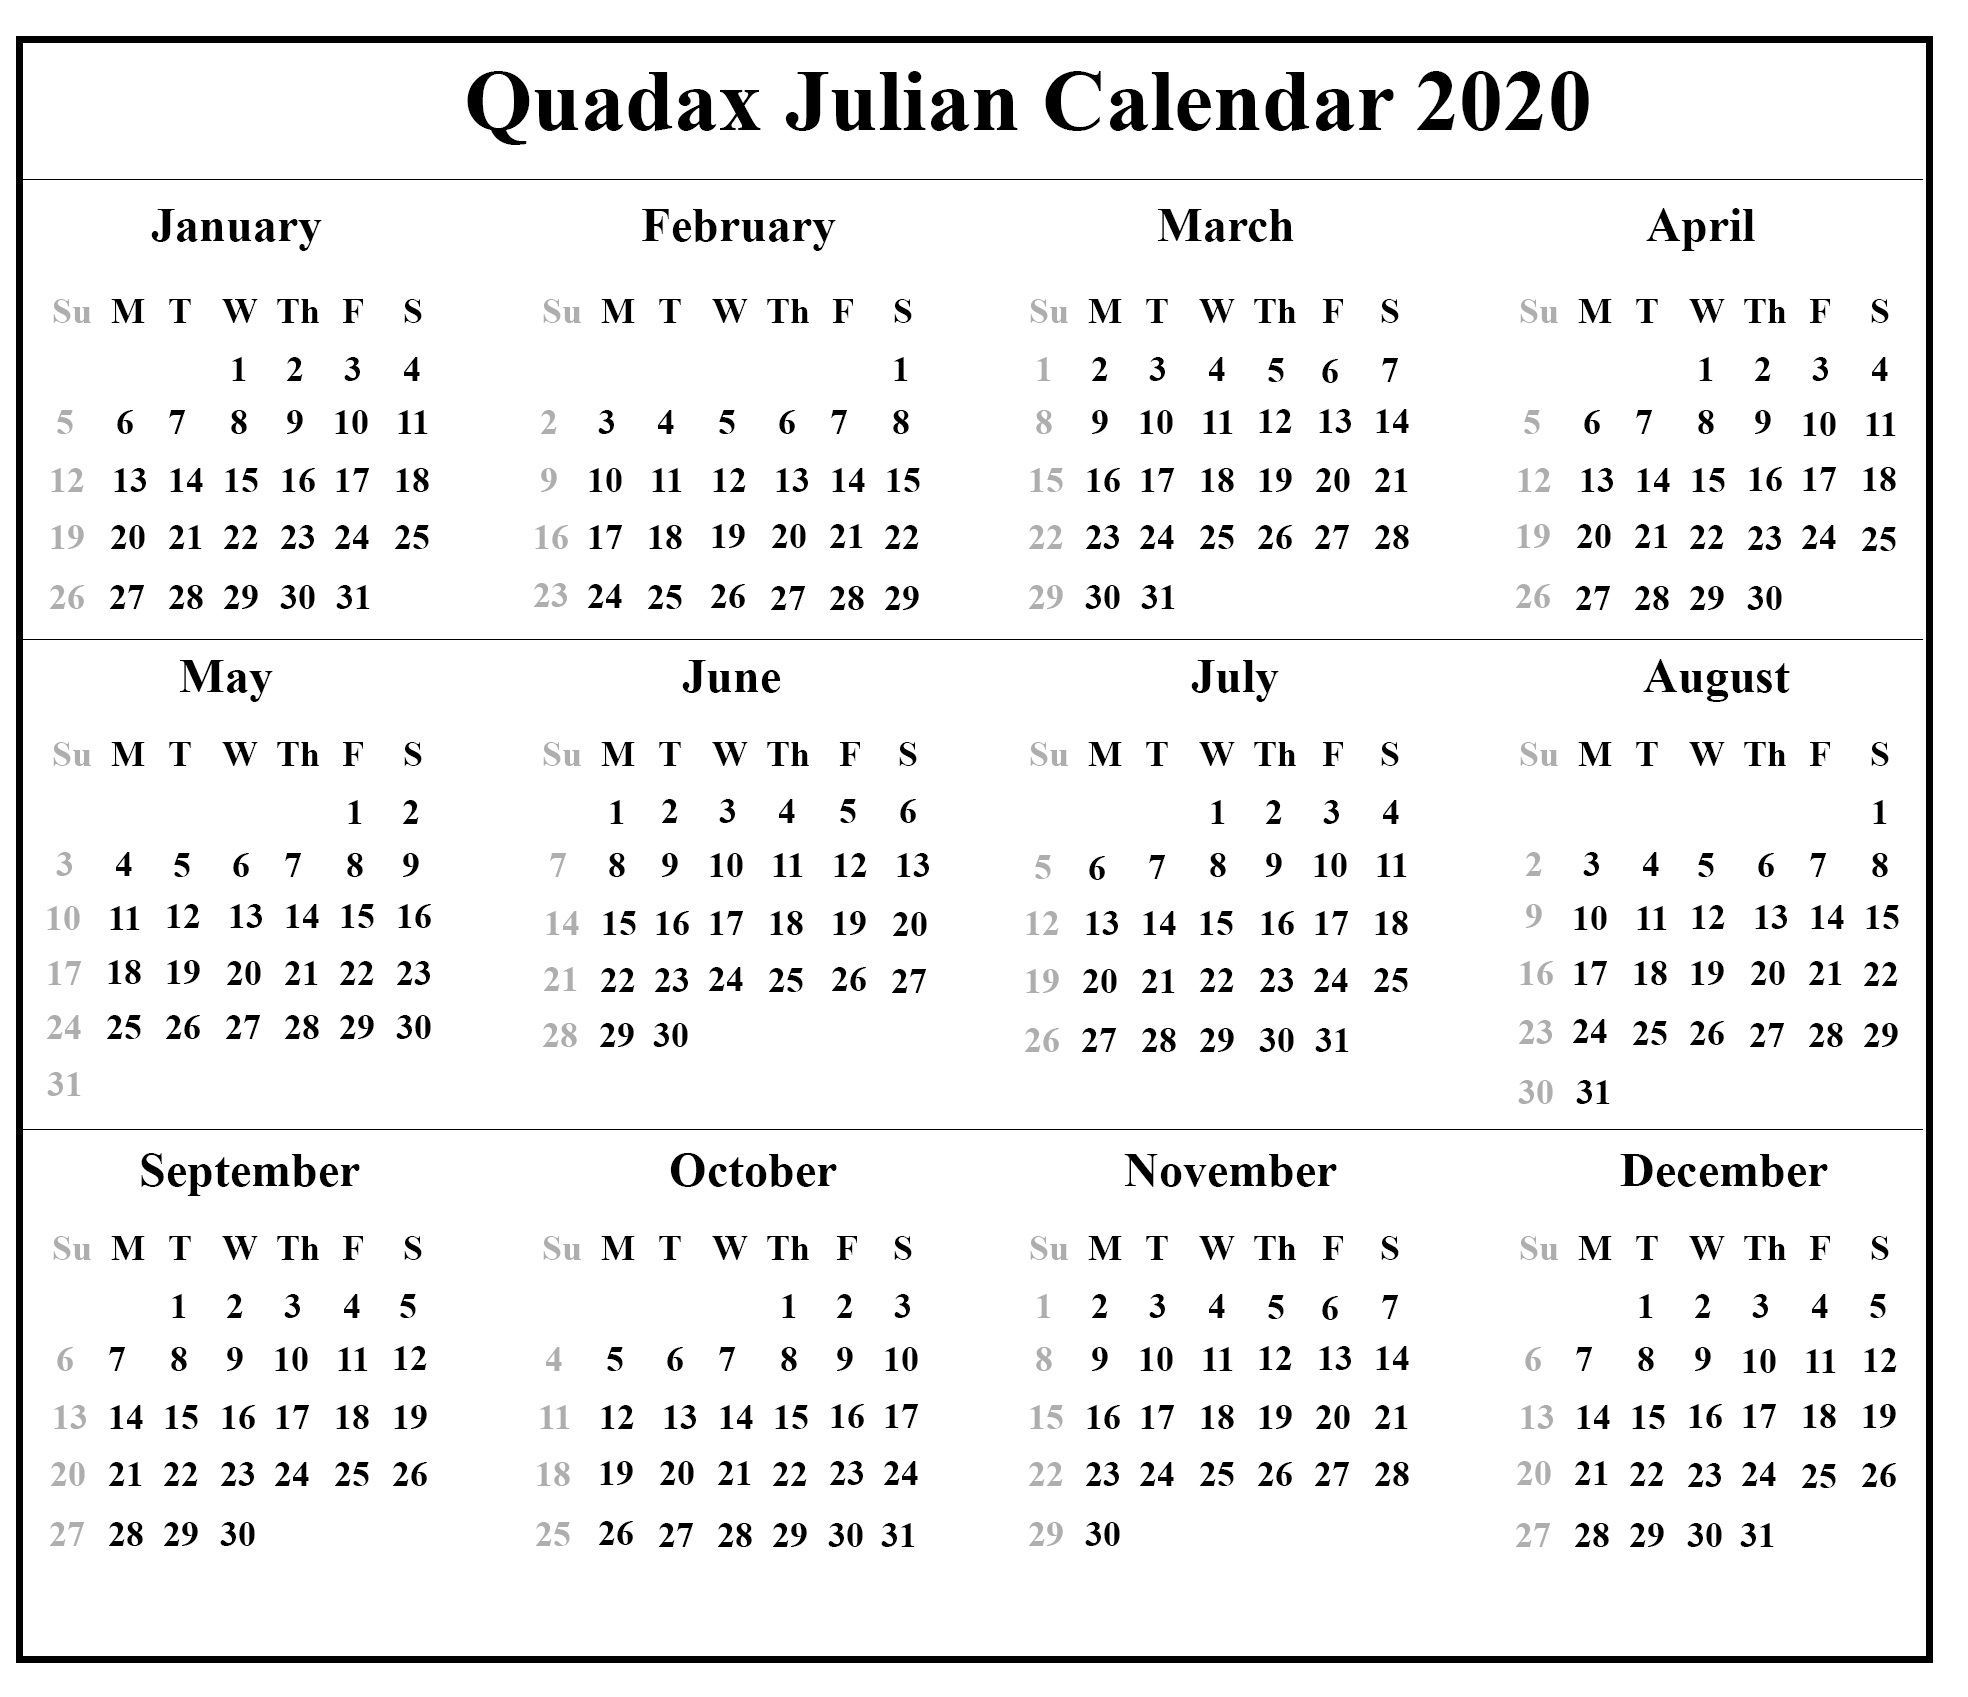 Quadax Julian Calendar 2020 Pdf | Example Calendar Printable throughout 2020 Julian Calendar